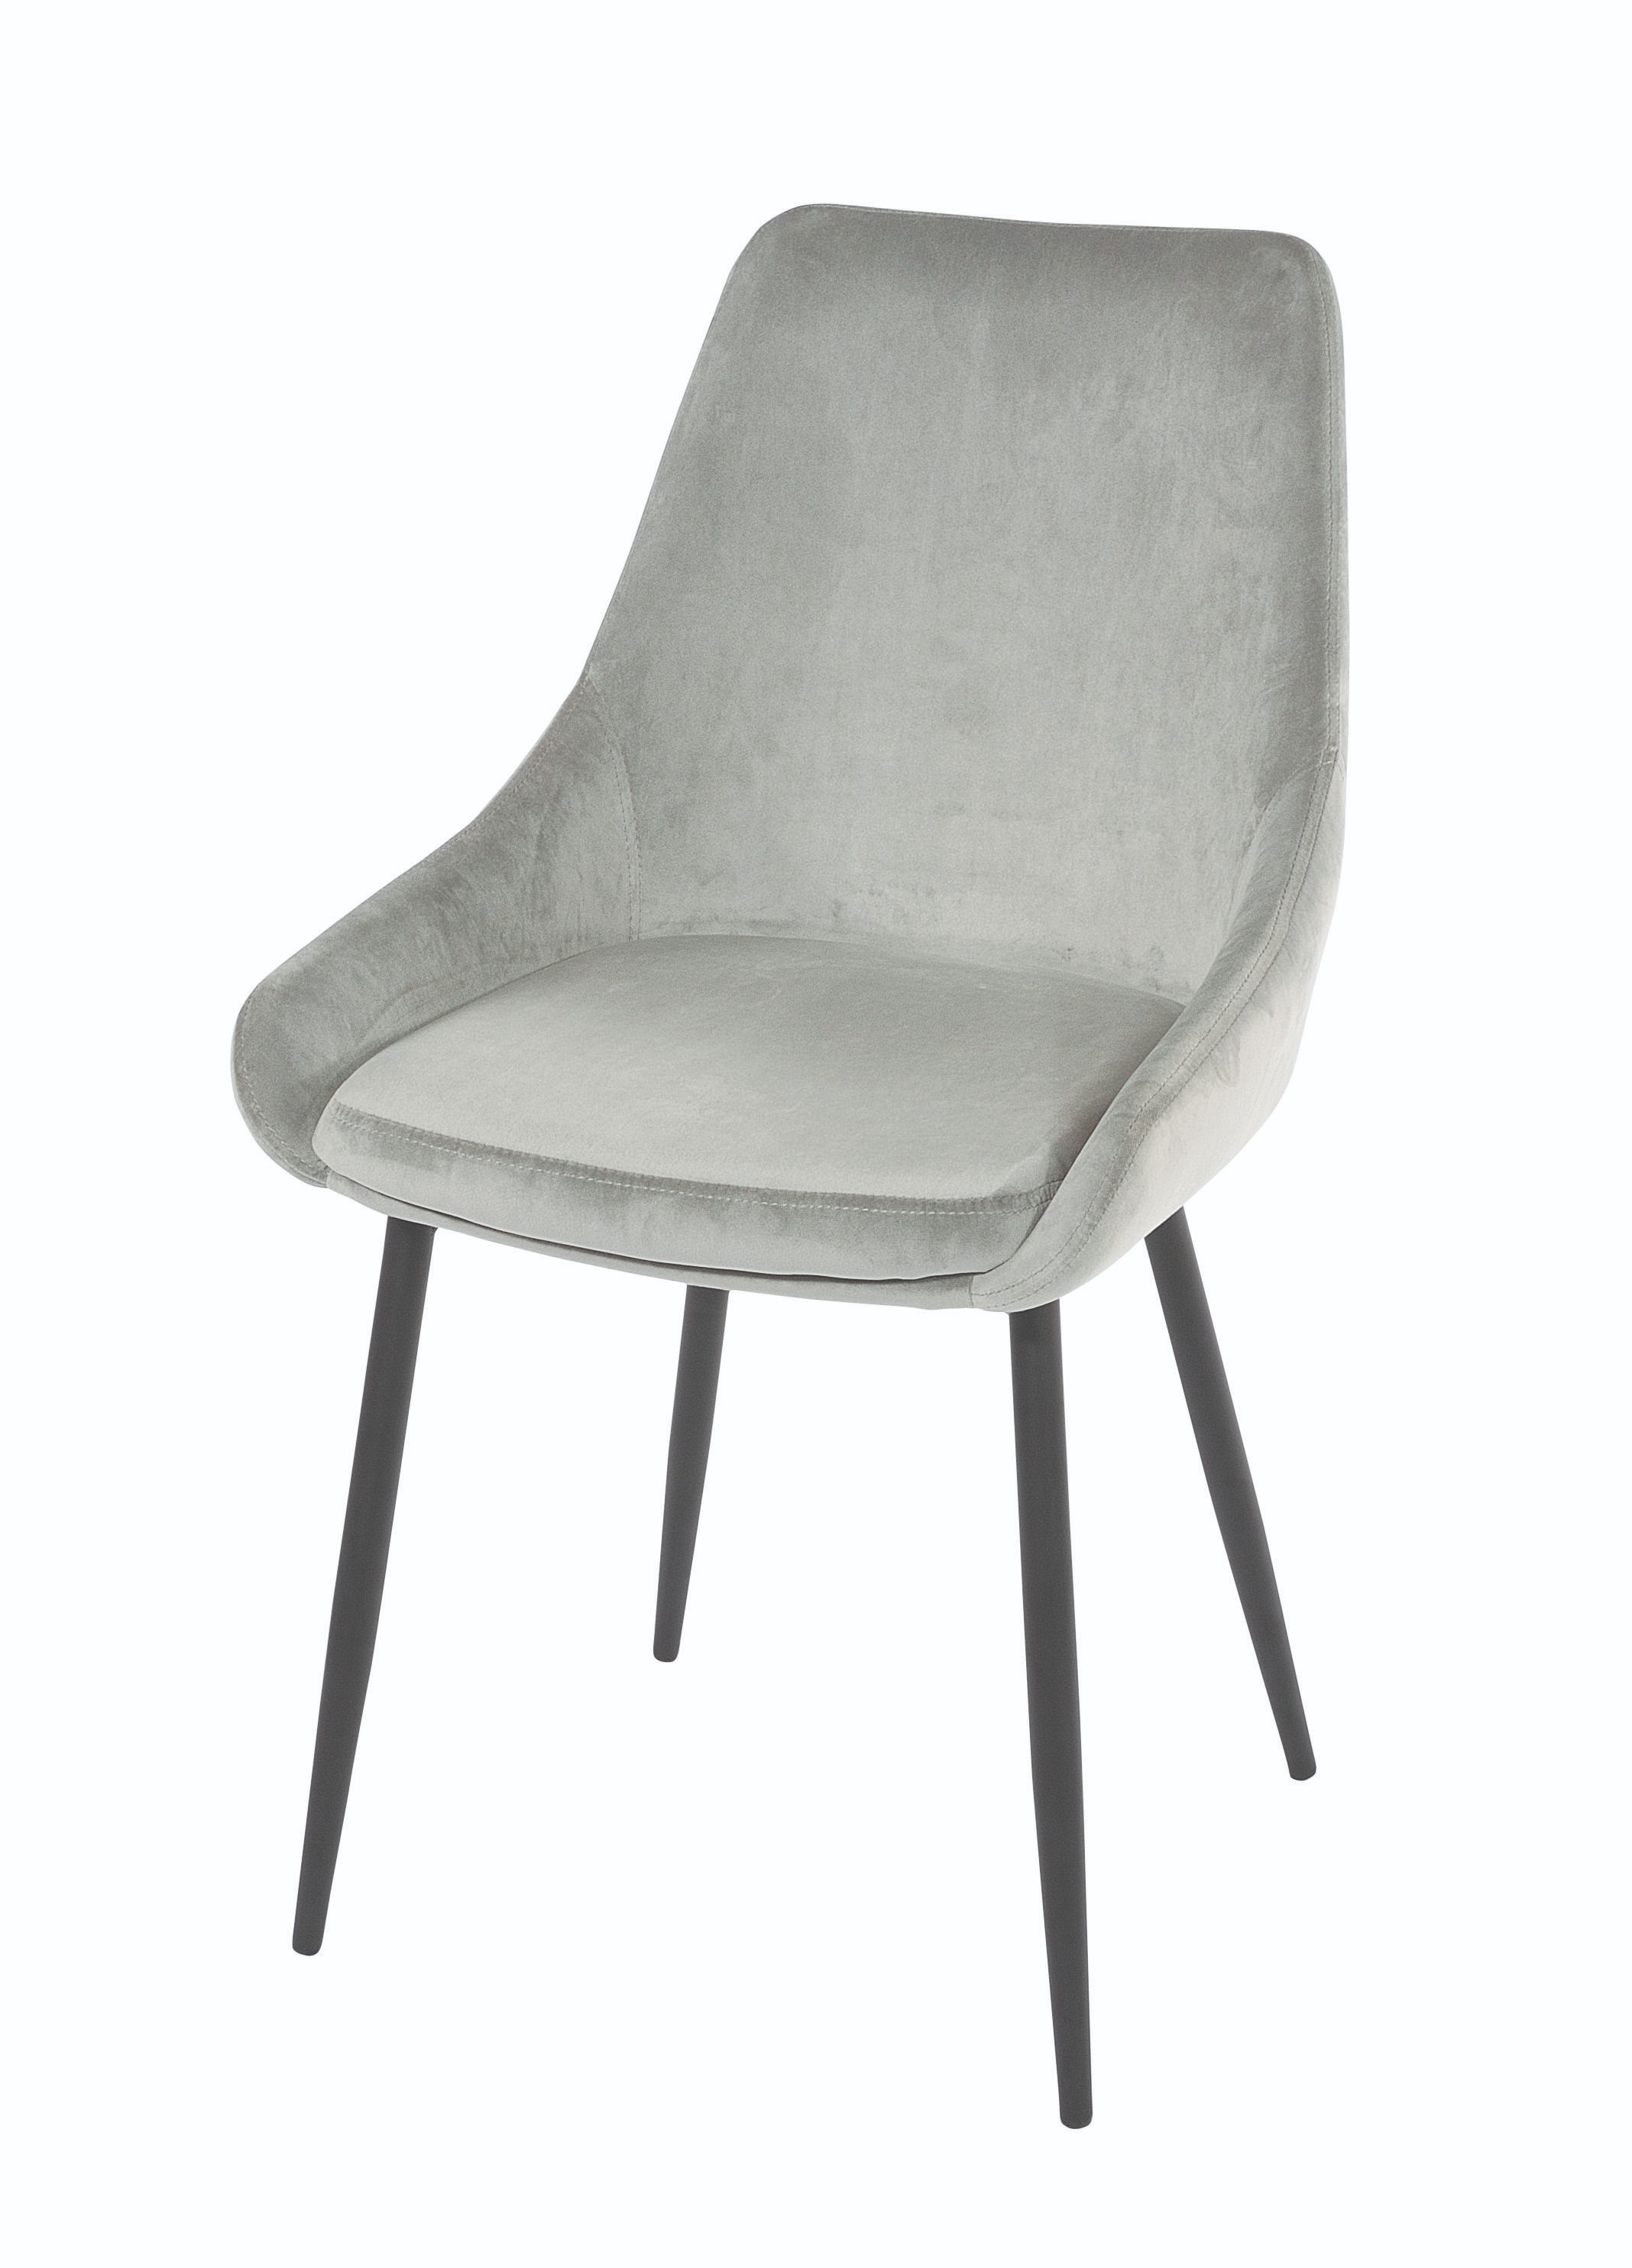 DAWSONE Sierra Grey Chair